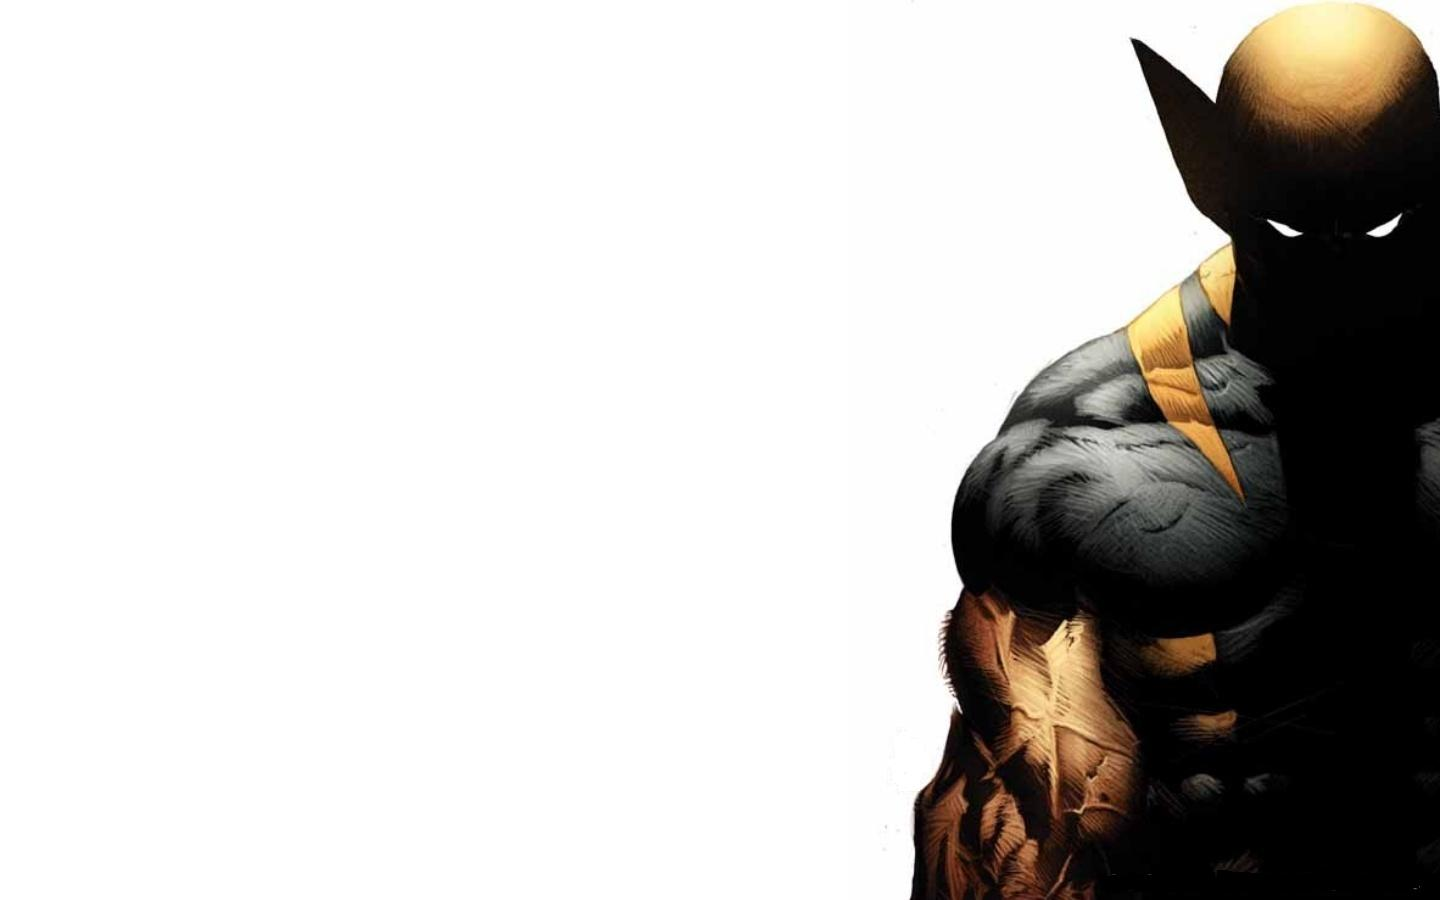 Wolverine wallpaper 001 adorable wallpapers wolverine wallpaper 001 voltagebd Images